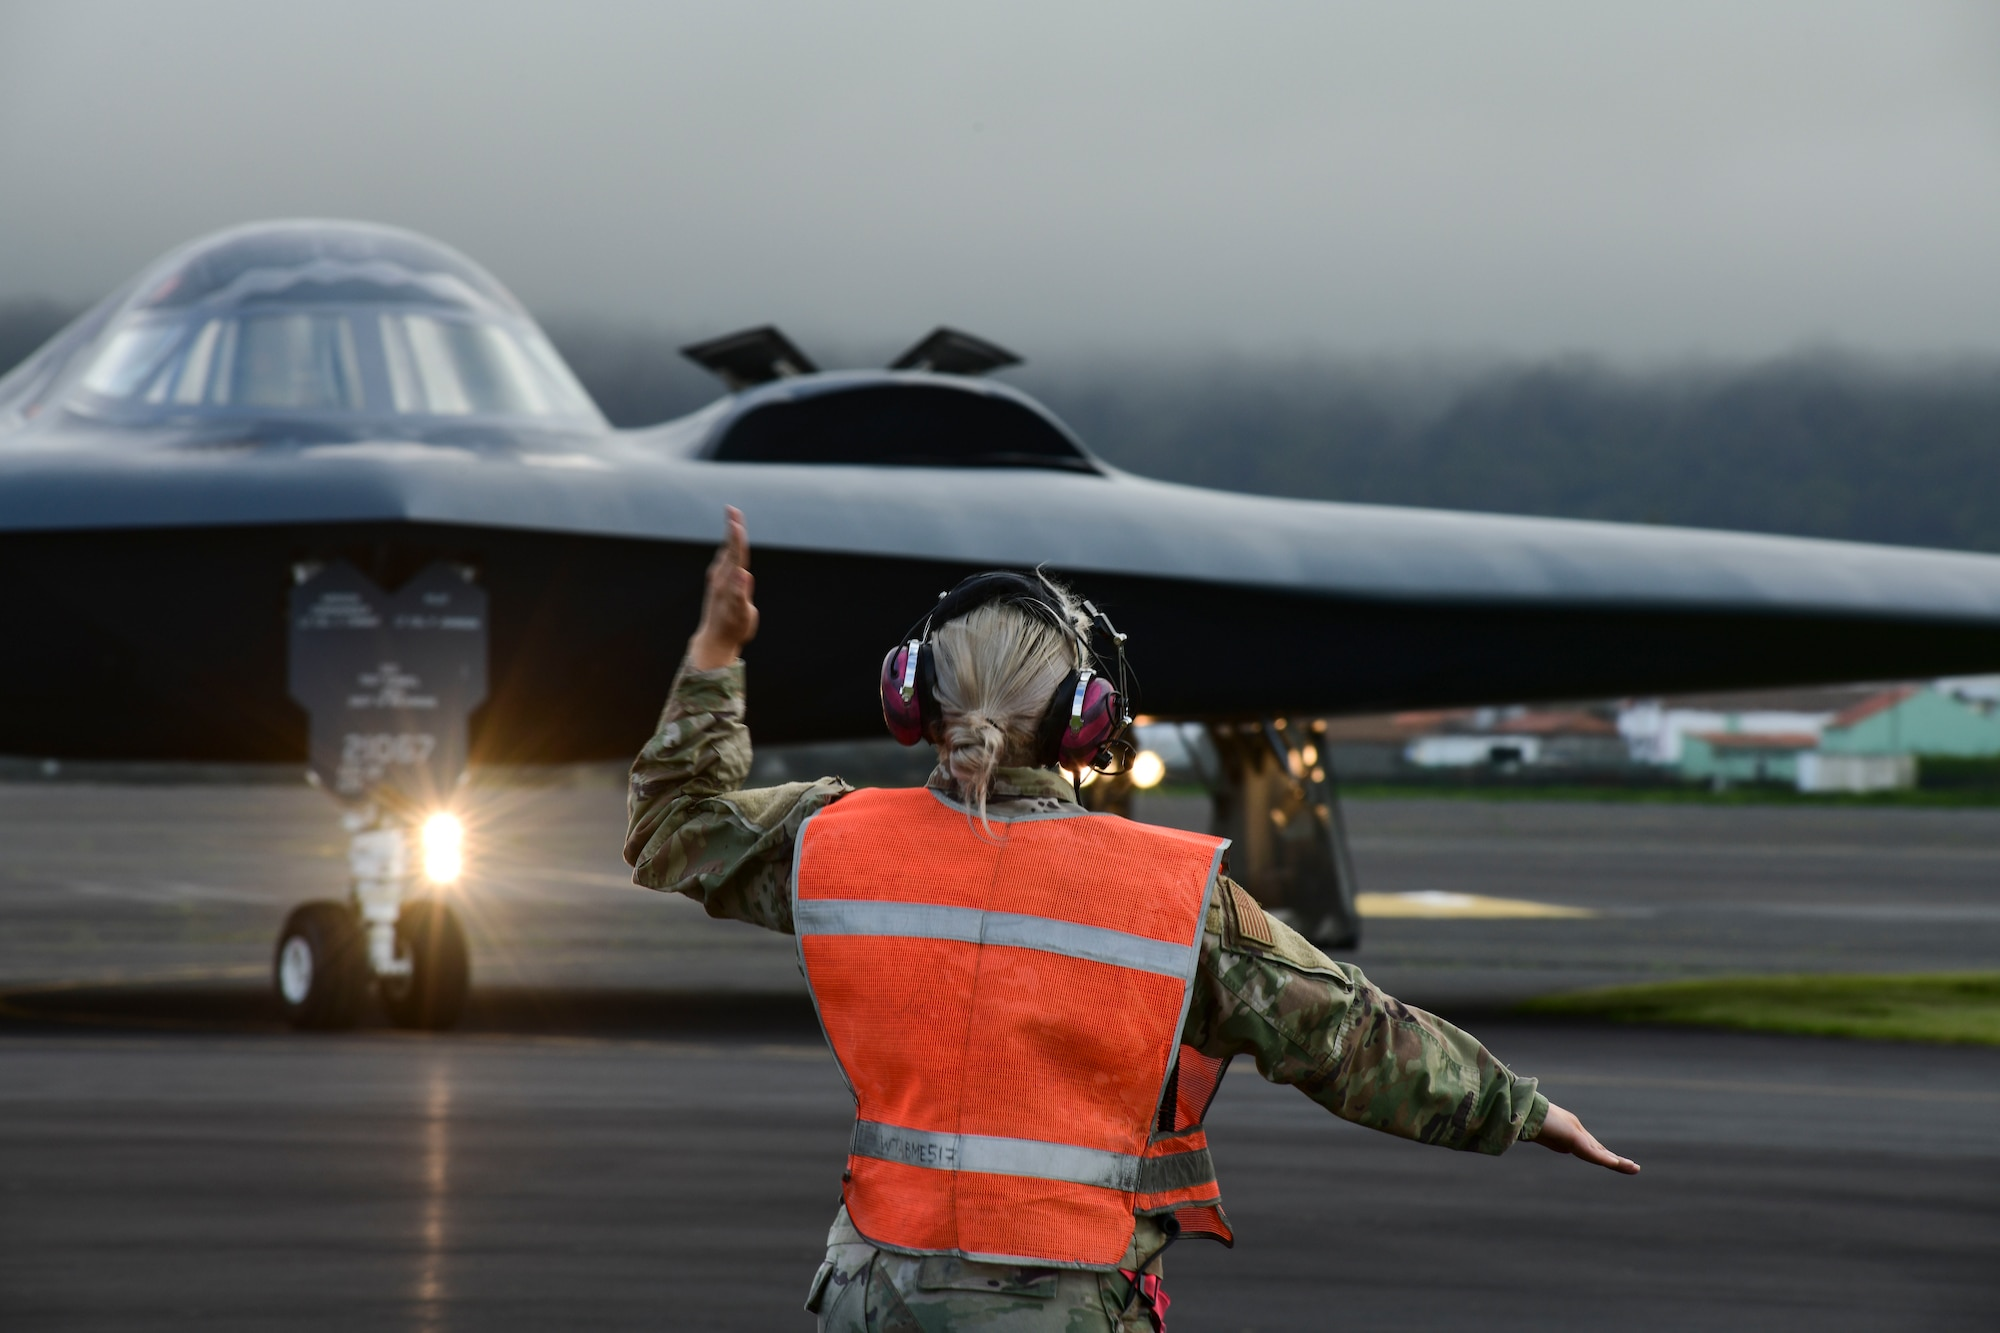 Three B-2 Spirit stealth bombers, assigned to Whiteman Air Force Base, Missouri, depart Lajes Field, Azores, March 16, 2021. The B-2s refueled at Lajes prior to supporting bomber task force missions in the Arctic region.